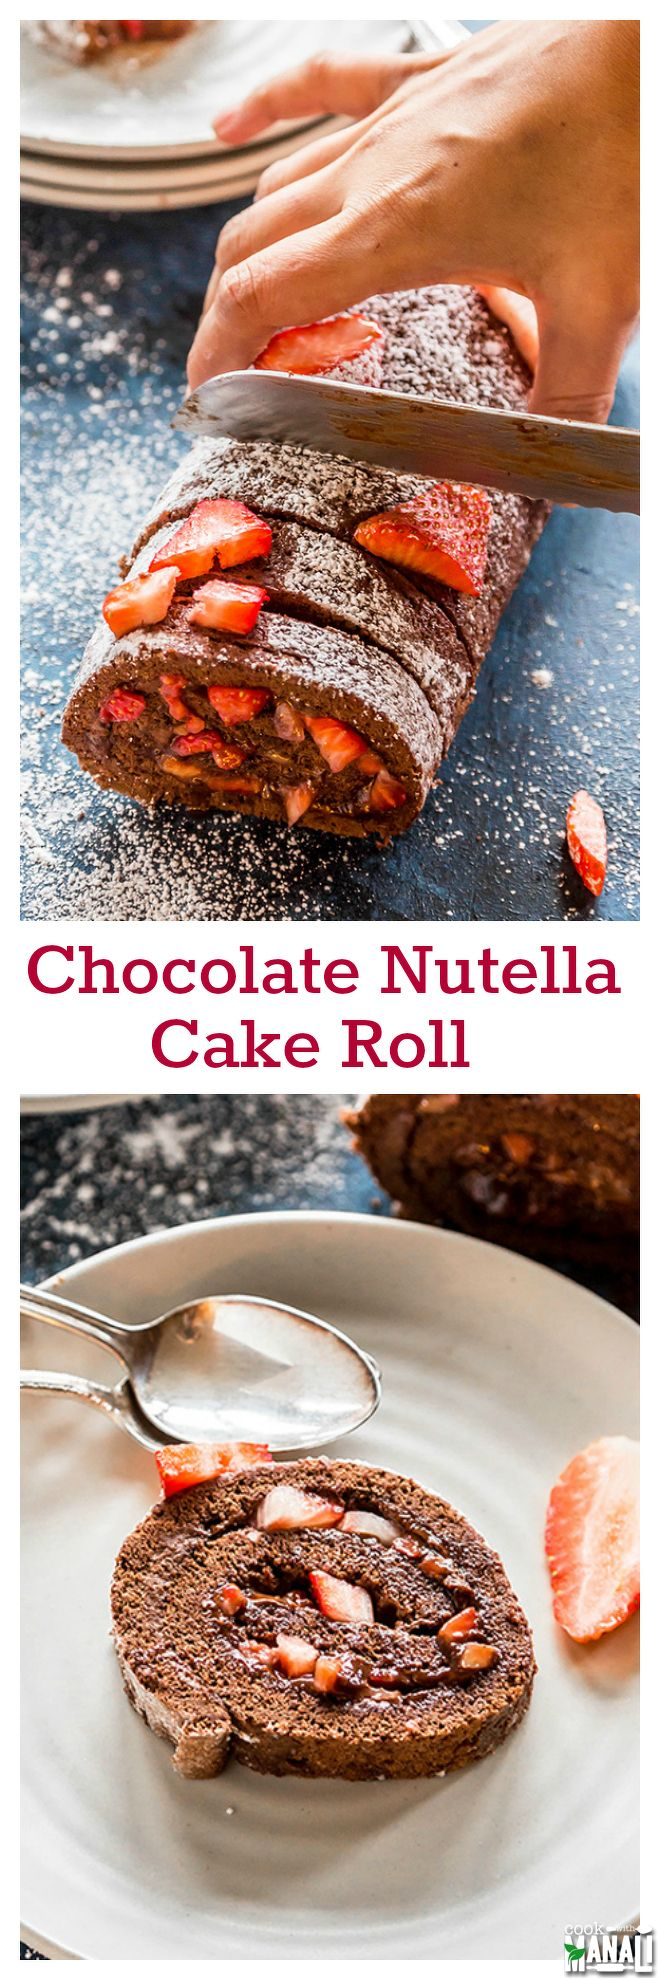 Looking for an elegant dessert this Valentine's Day? Try this Chocolate Nutella Cake Roll - chocolate cake filled with nutella & fresh strawberries!